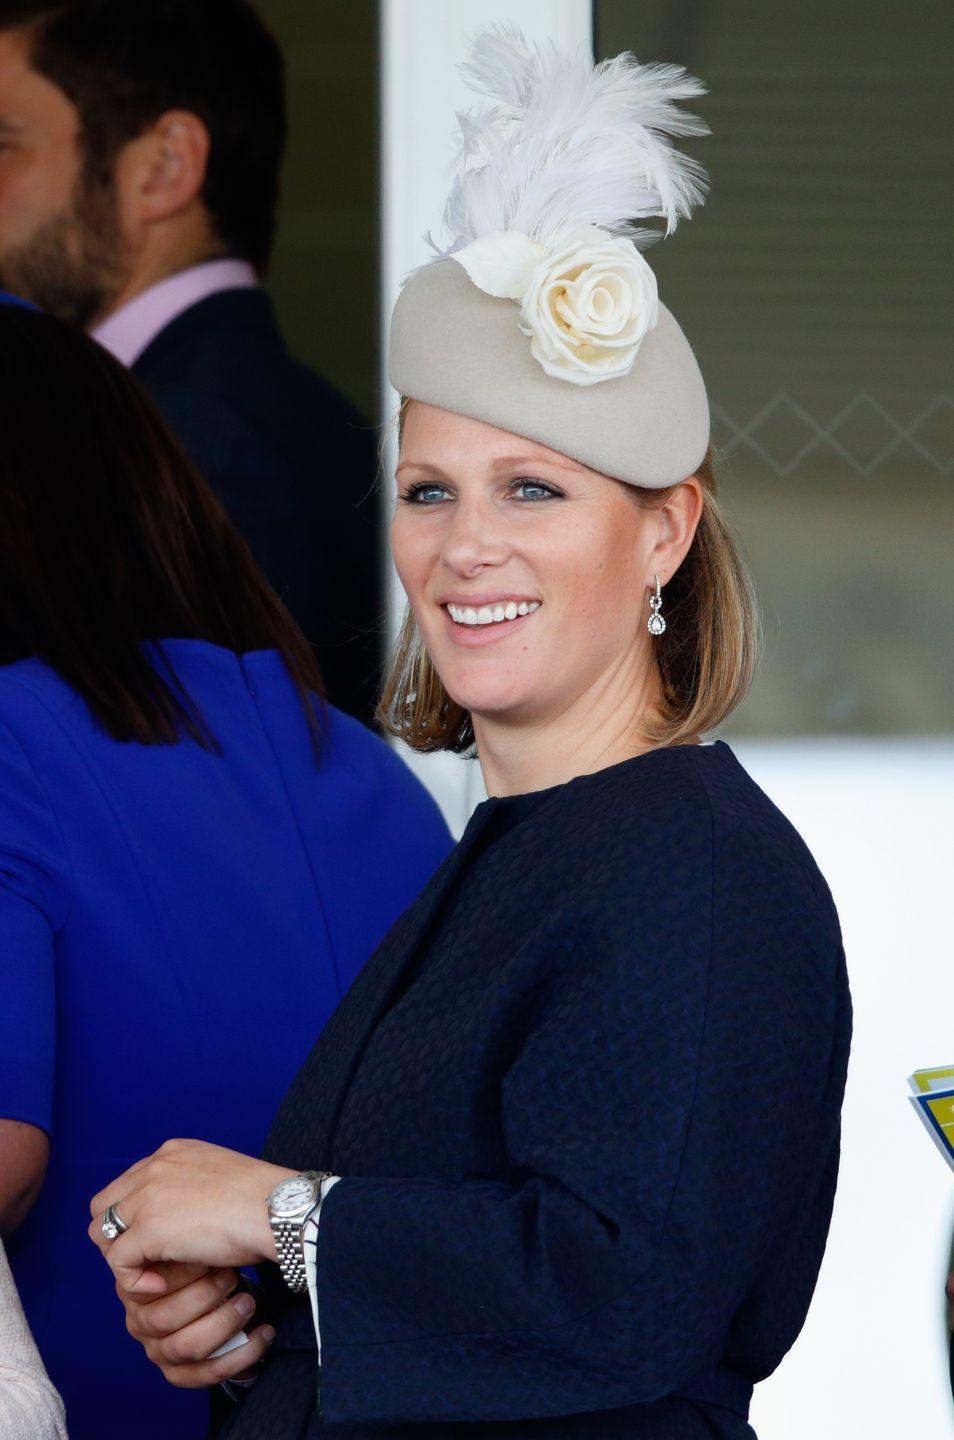 <p>Prince William and Prince Harry's cousin is currently 16th in line to the British throne, but for most of her life, she's focused on something just as exciting as the royal throne: a career in equestrianism, which has taken her as far as 2012 Olympic Games in London, where she won silver in a team event.</p>